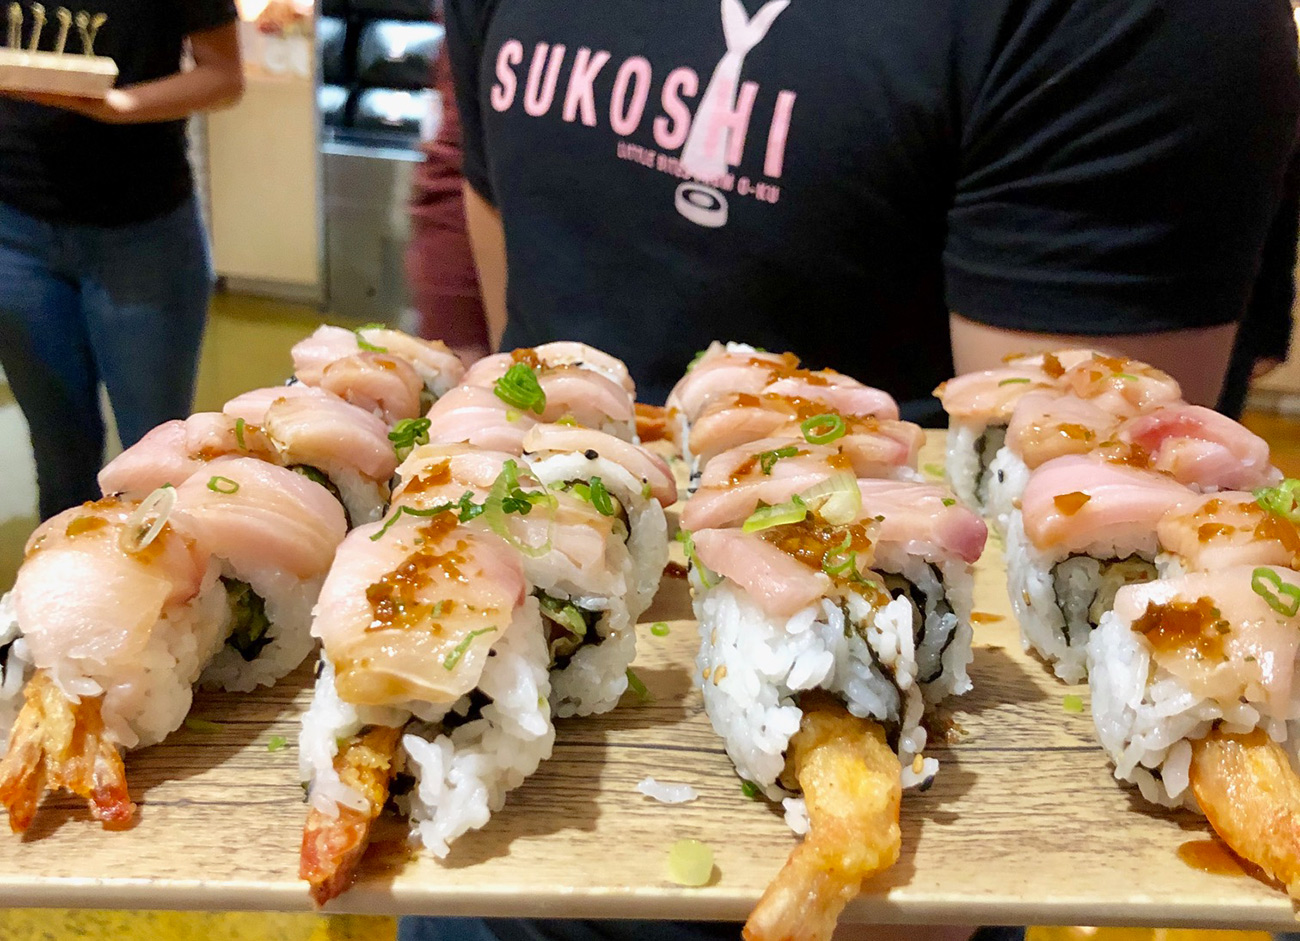 8 quick things to know about Sukoshi, the new Uptown sushi spot from O-Ku